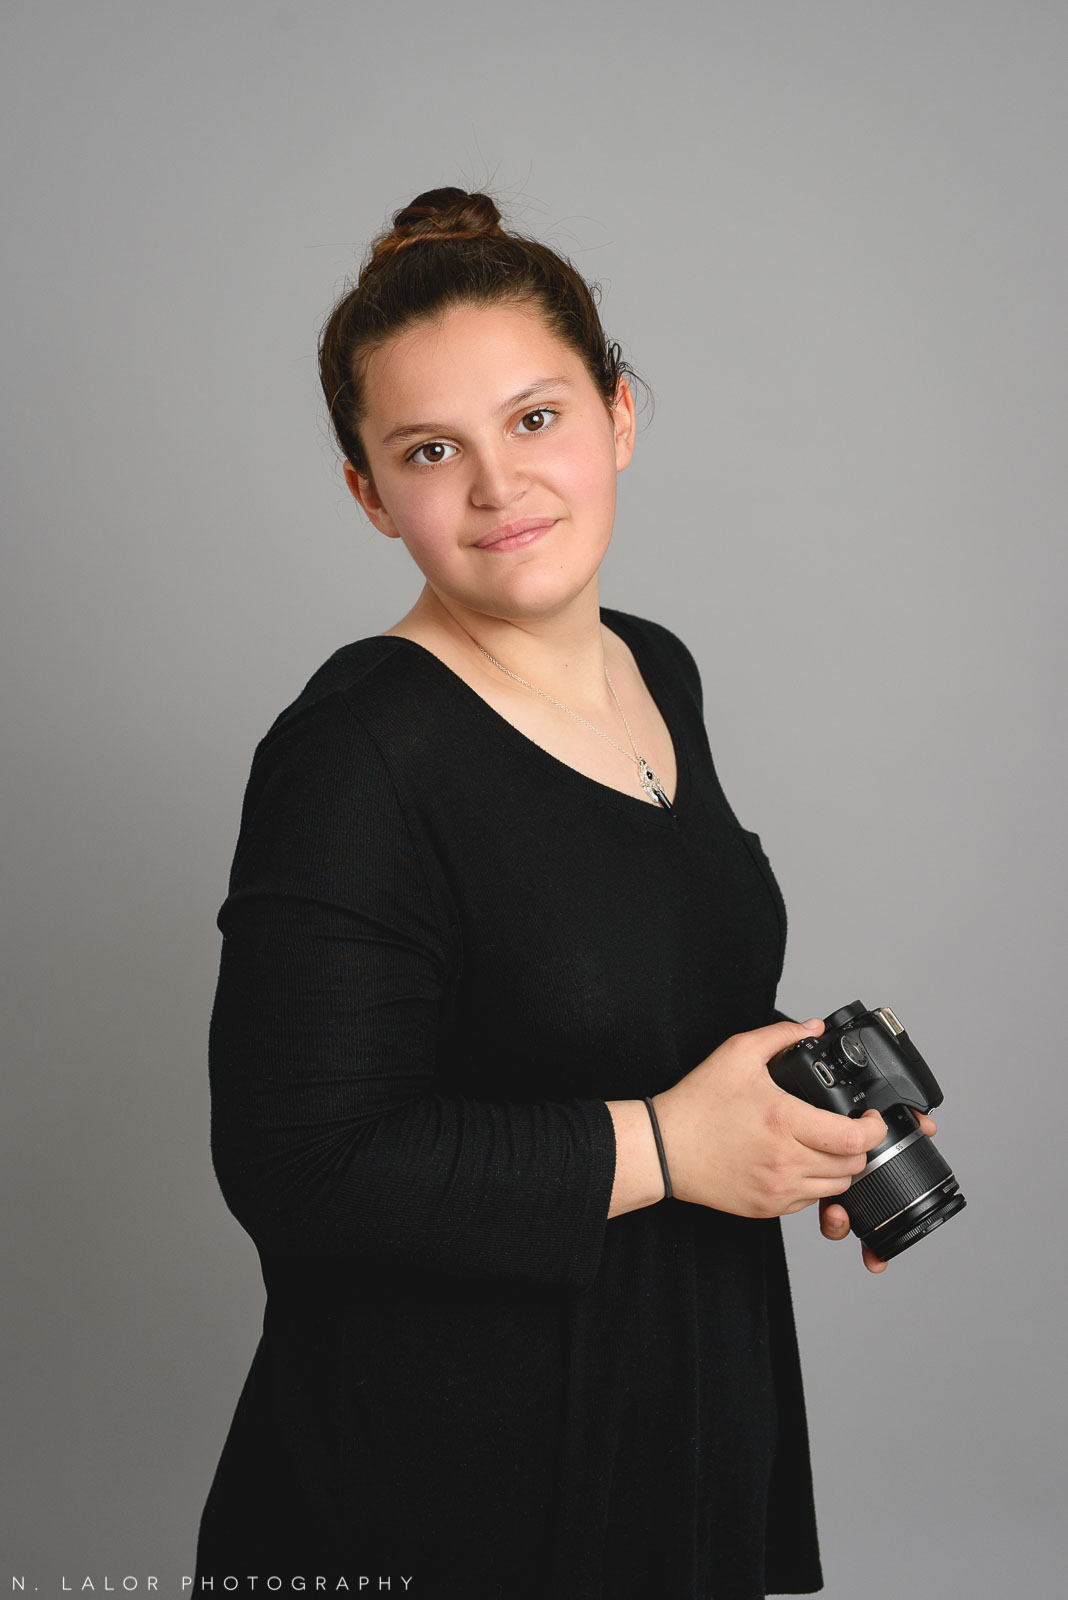 Sasha with her photo camera. Teen family photo session with N. Lalor Photography. Greenwich, Connecticut studio photographer.